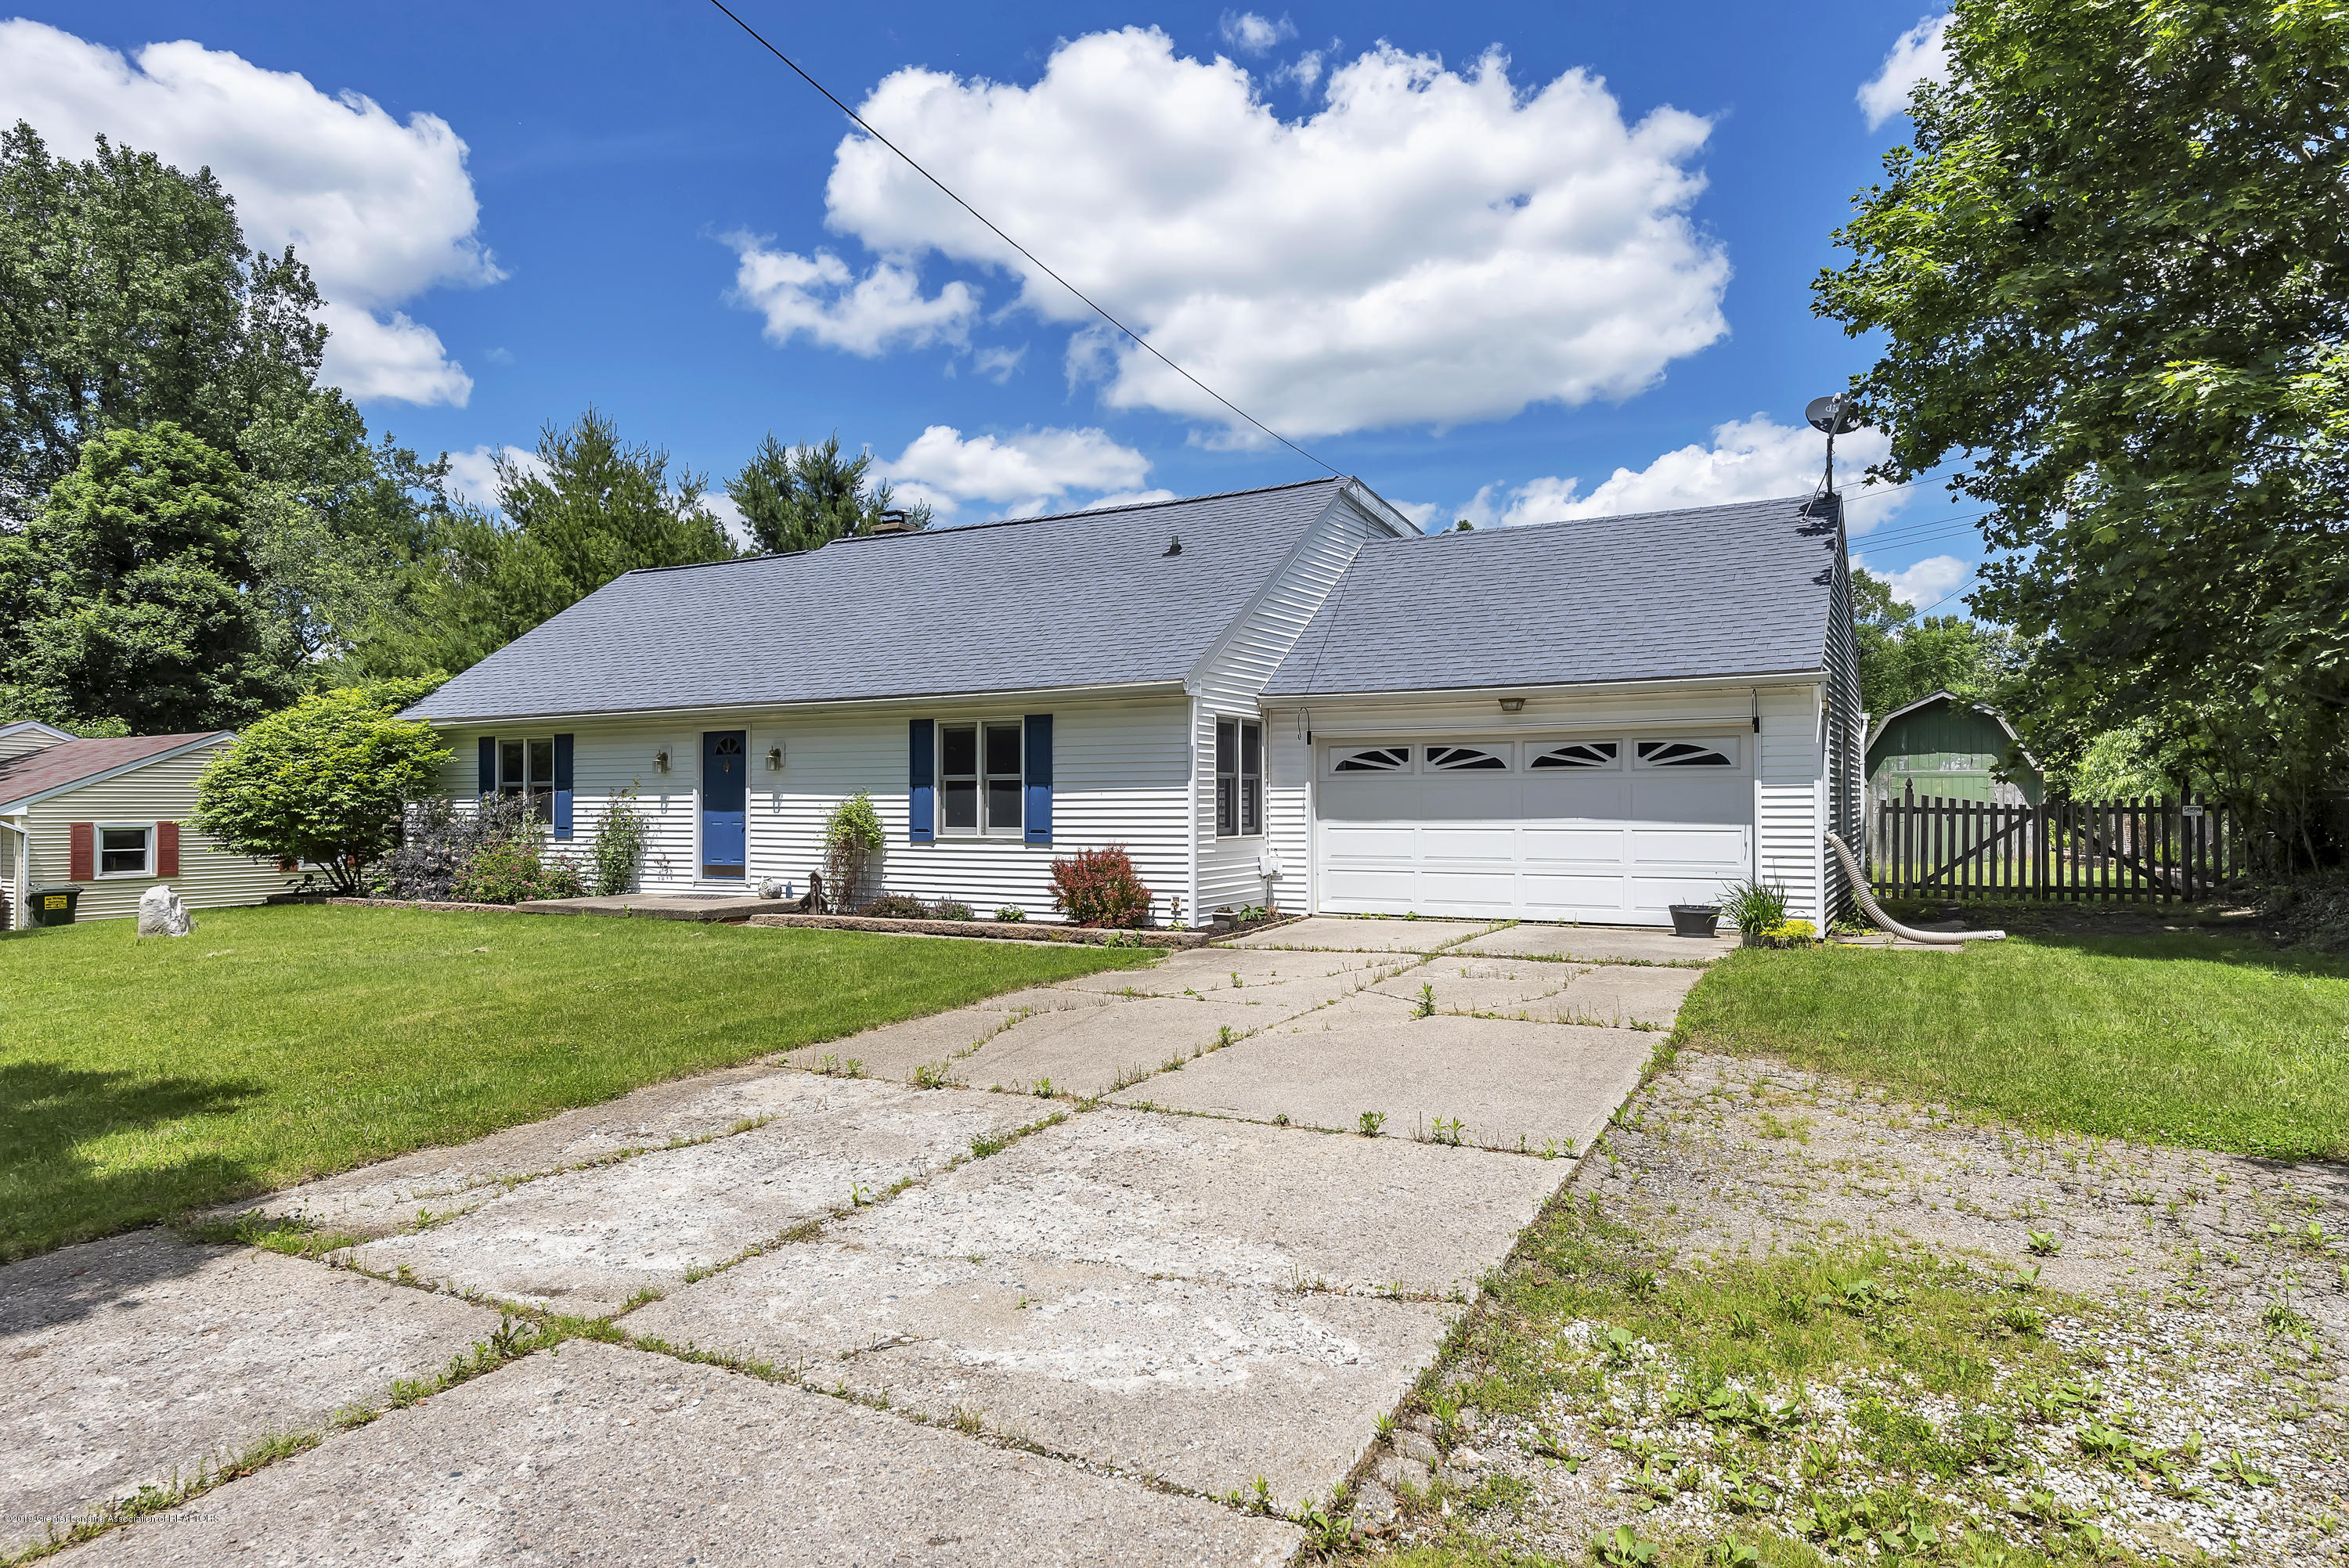 699 Sherwood Rd - 699-E-Sherwood-Rd-Williamston-windowstil - 4